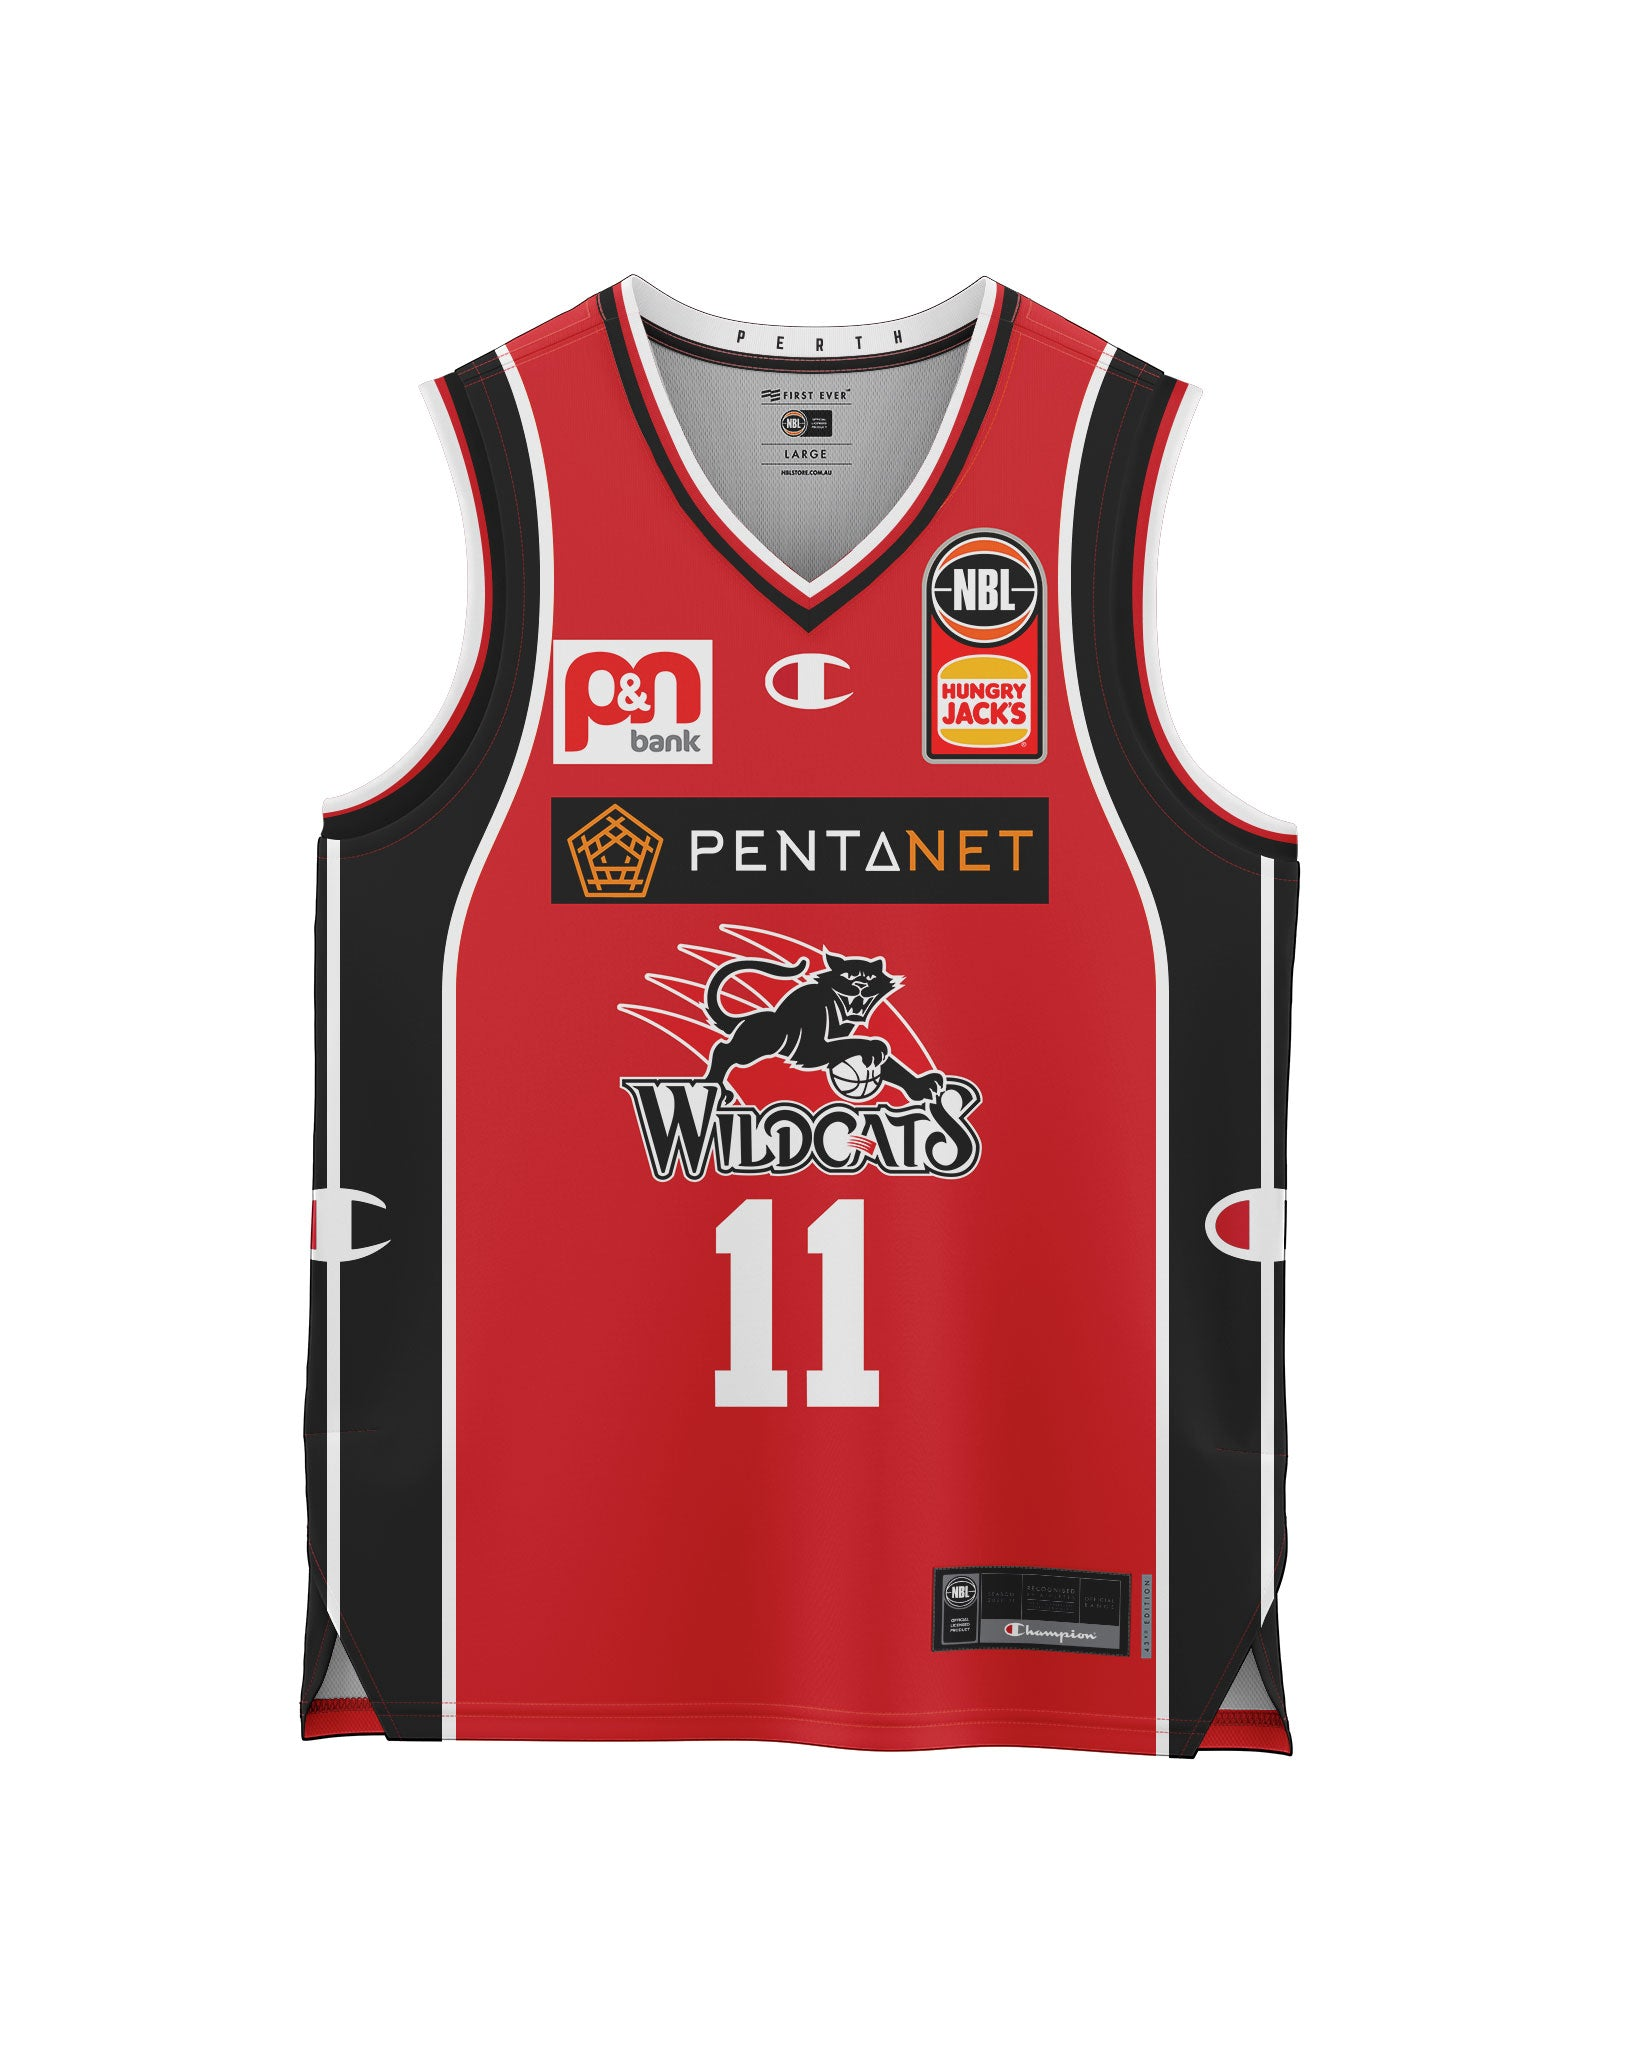 Perth Wildcats 20/21 Youth Authentic Heritage Jersey - Bryce Cotton